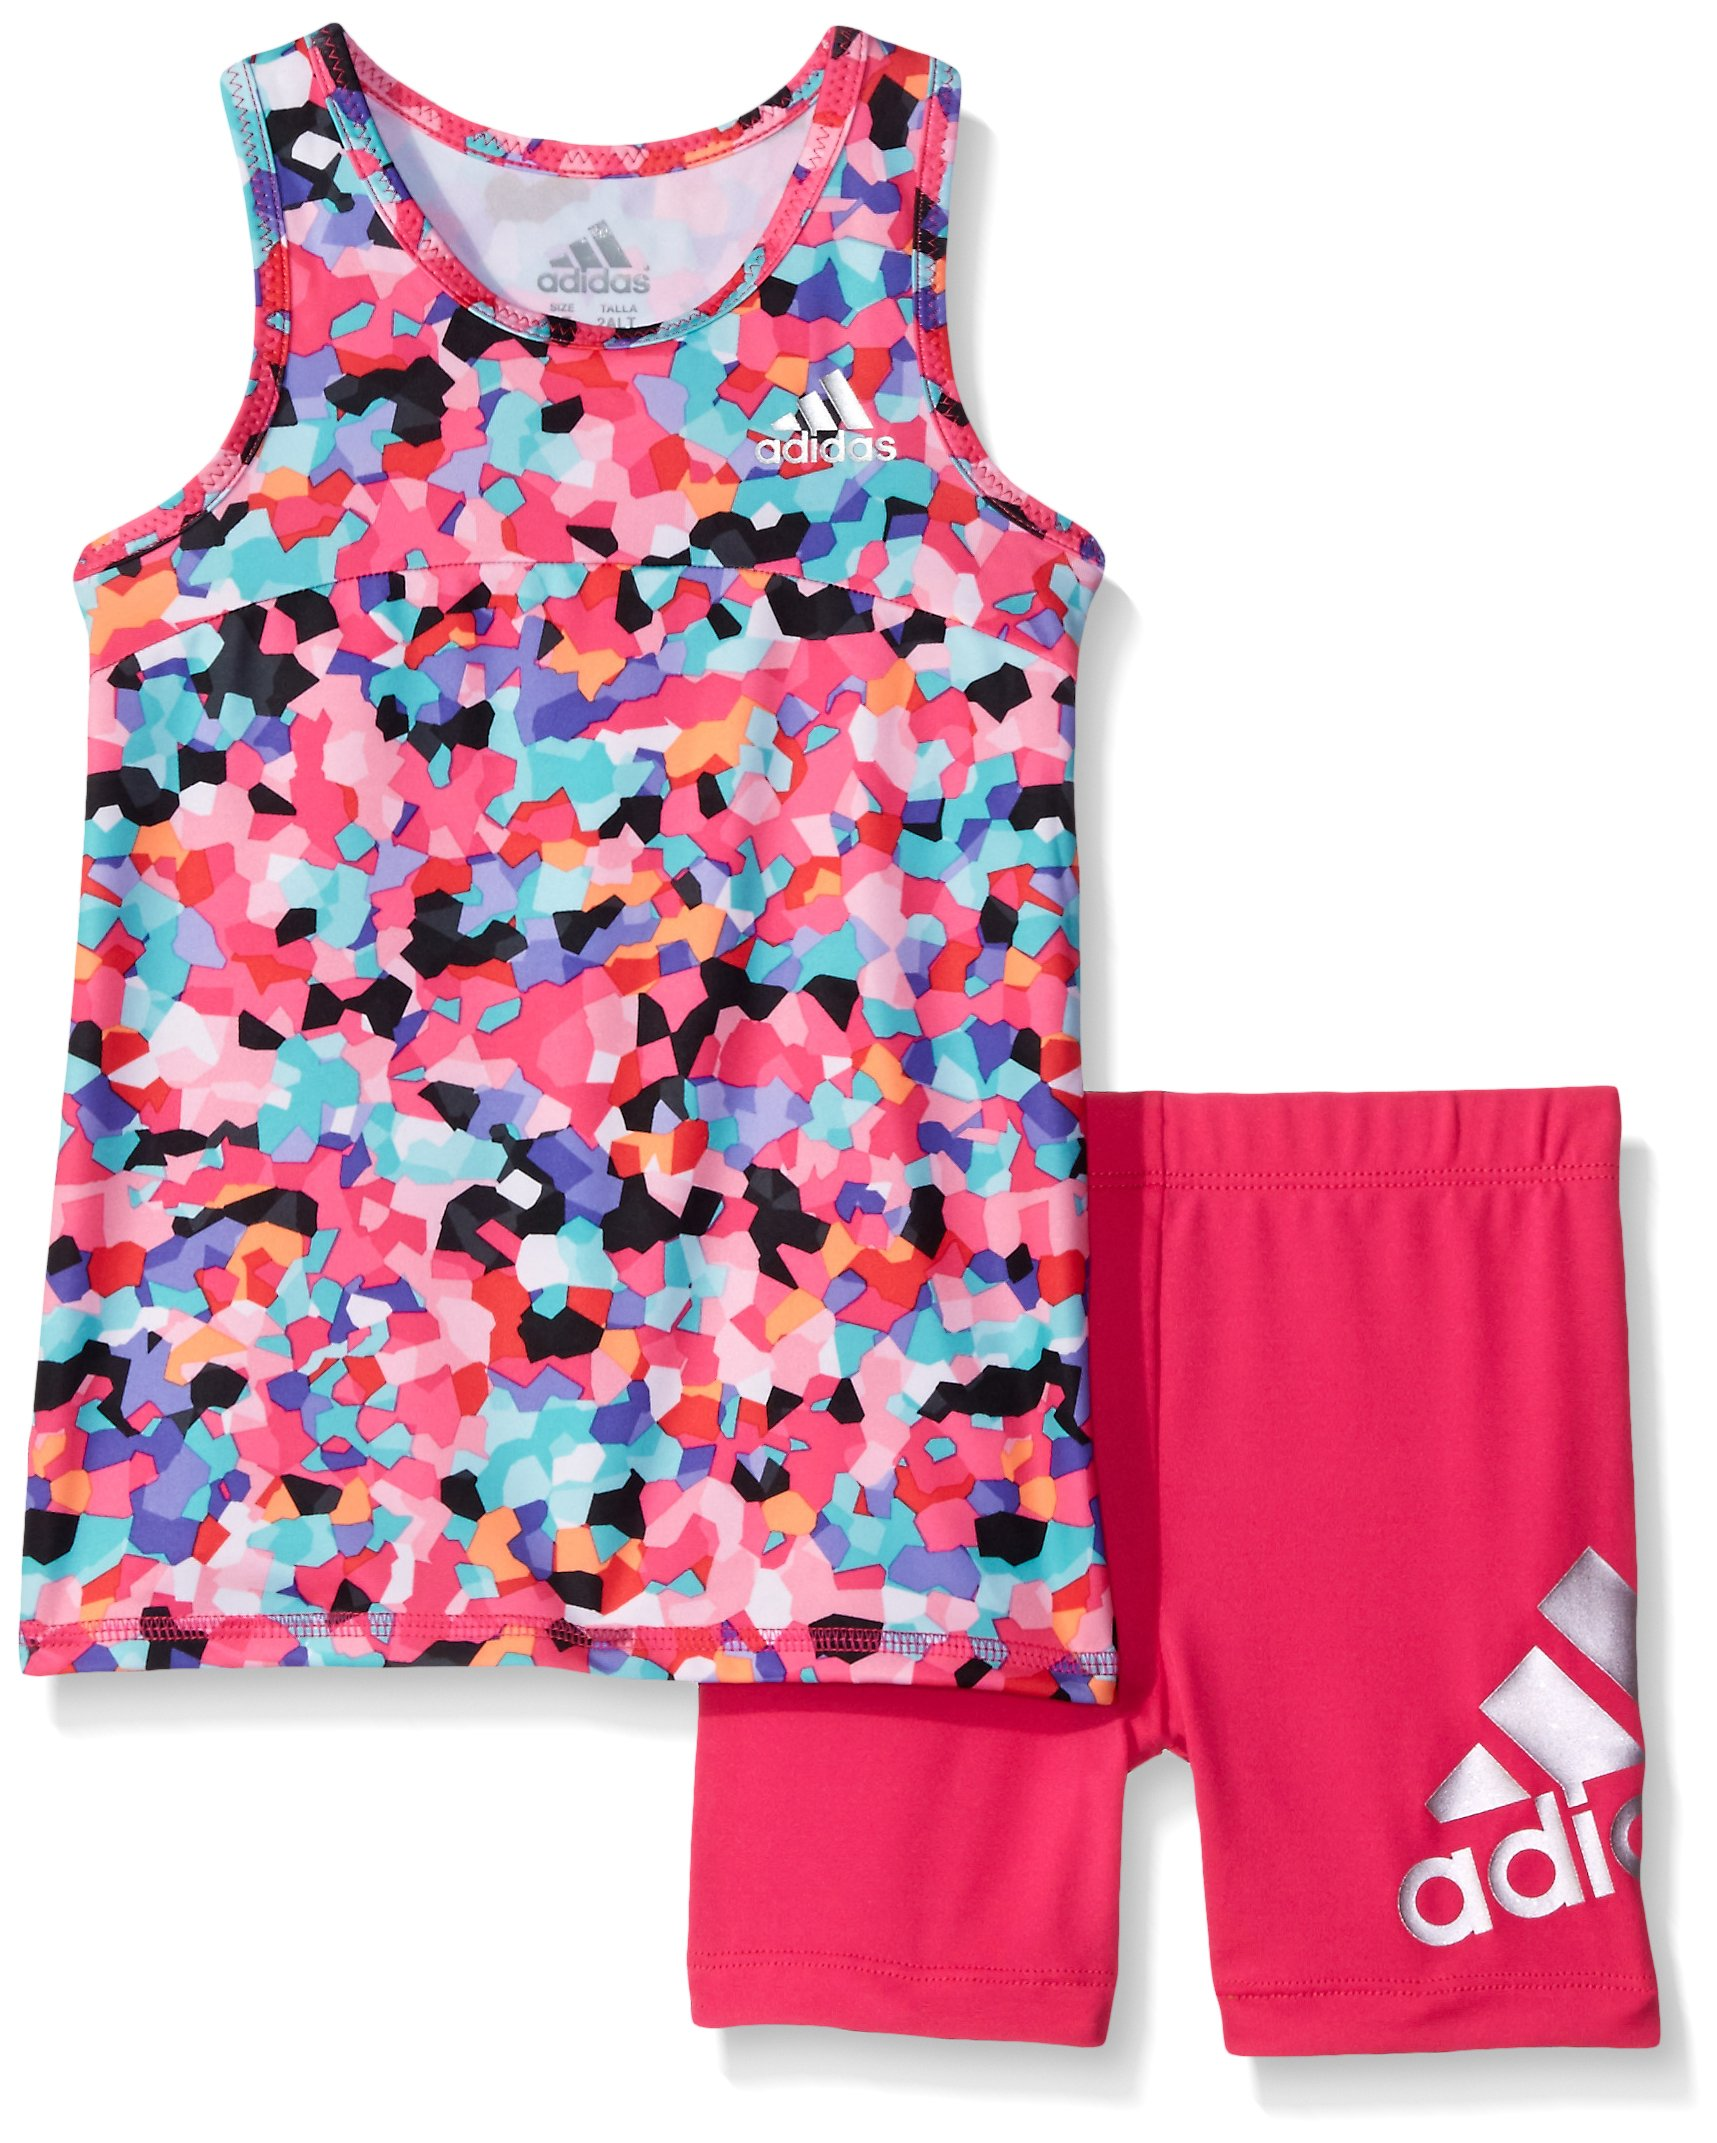 Adidas Baby Girls Top and Short Set product image